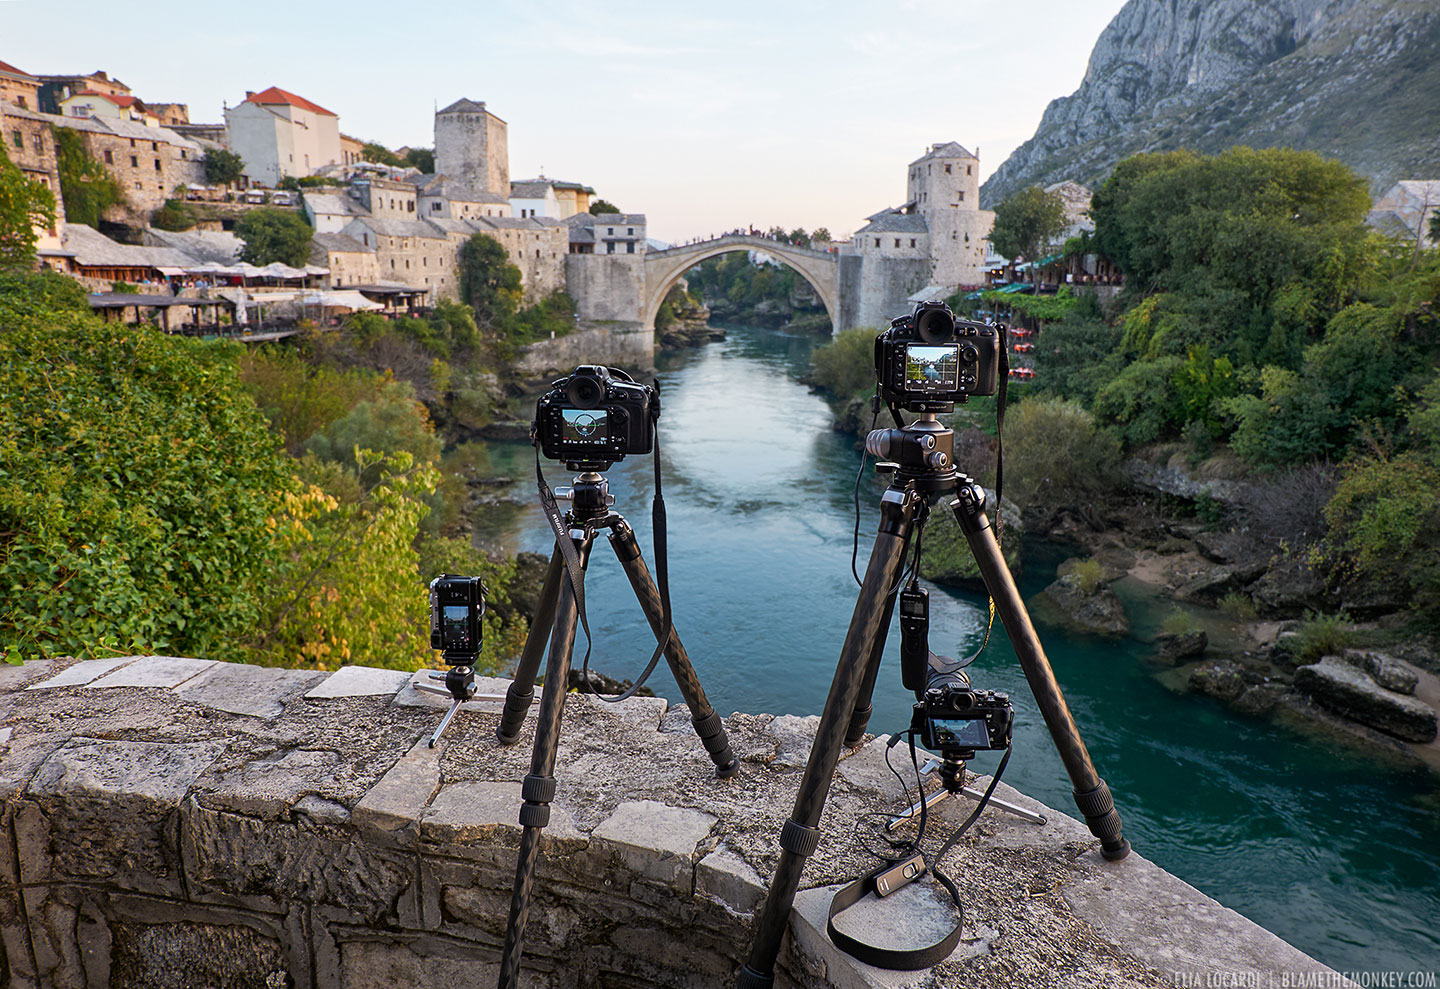 10-Mostar-4-camera-shooting-stari-most-bridge